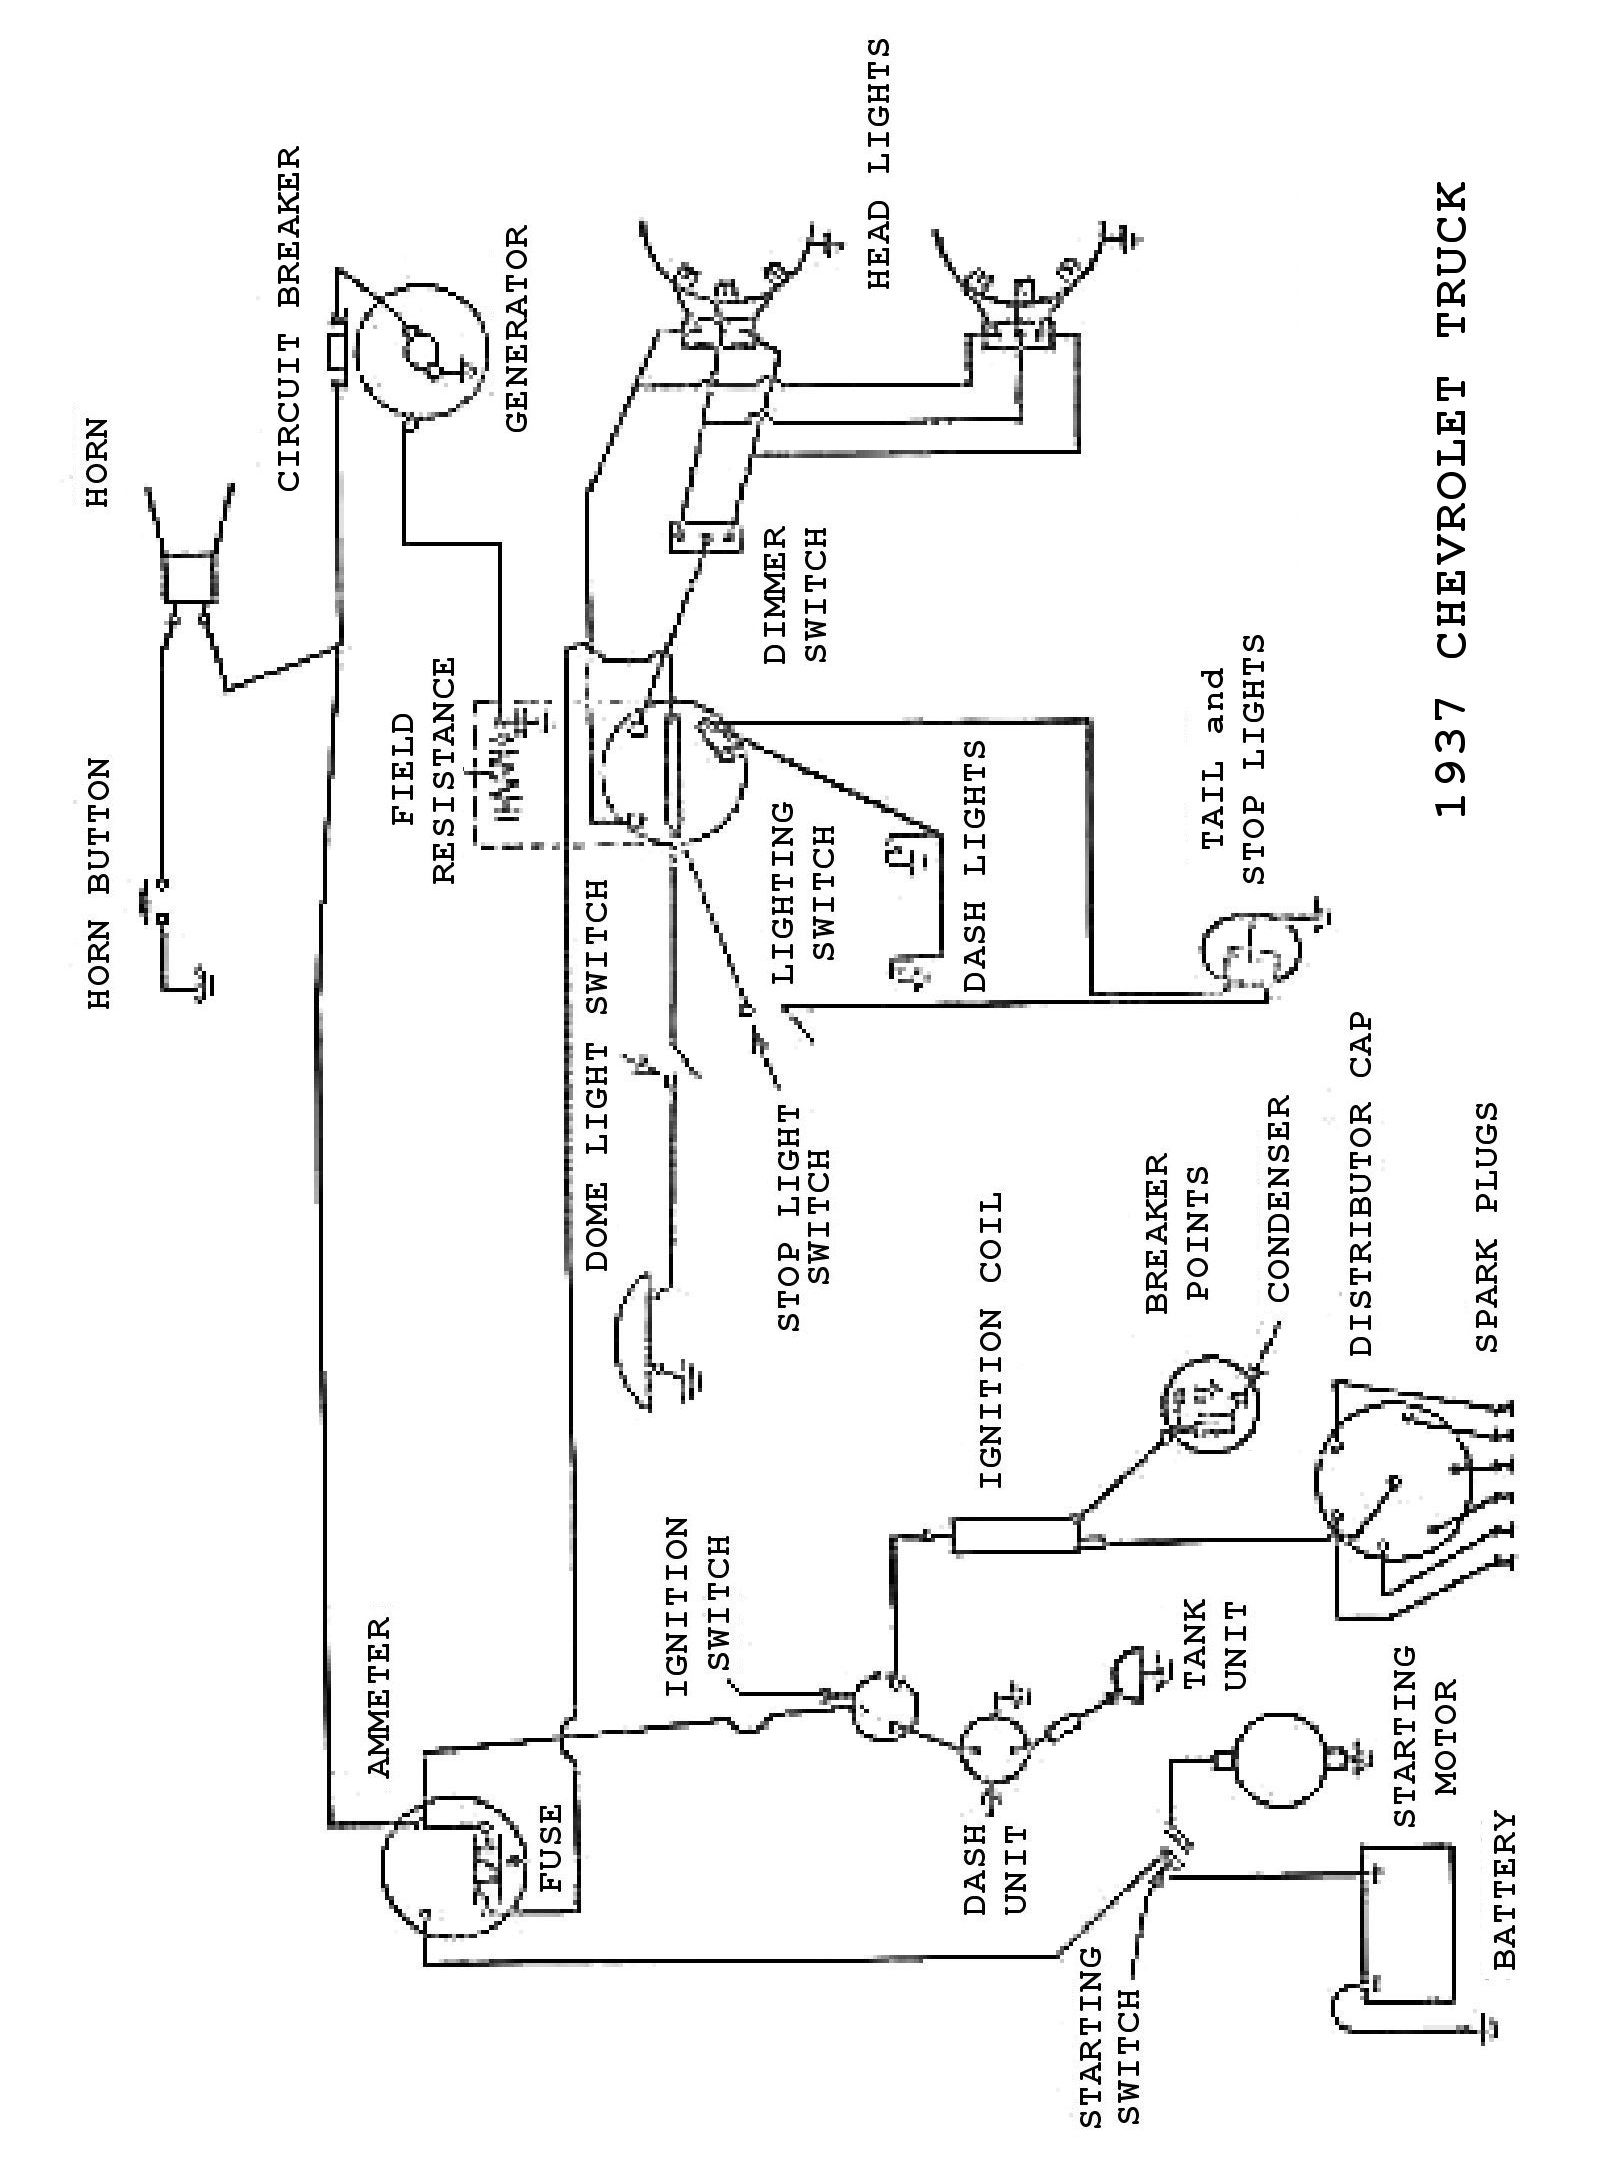 37truck chevy wiring diagrams modem wiring diagram at soozxer.org